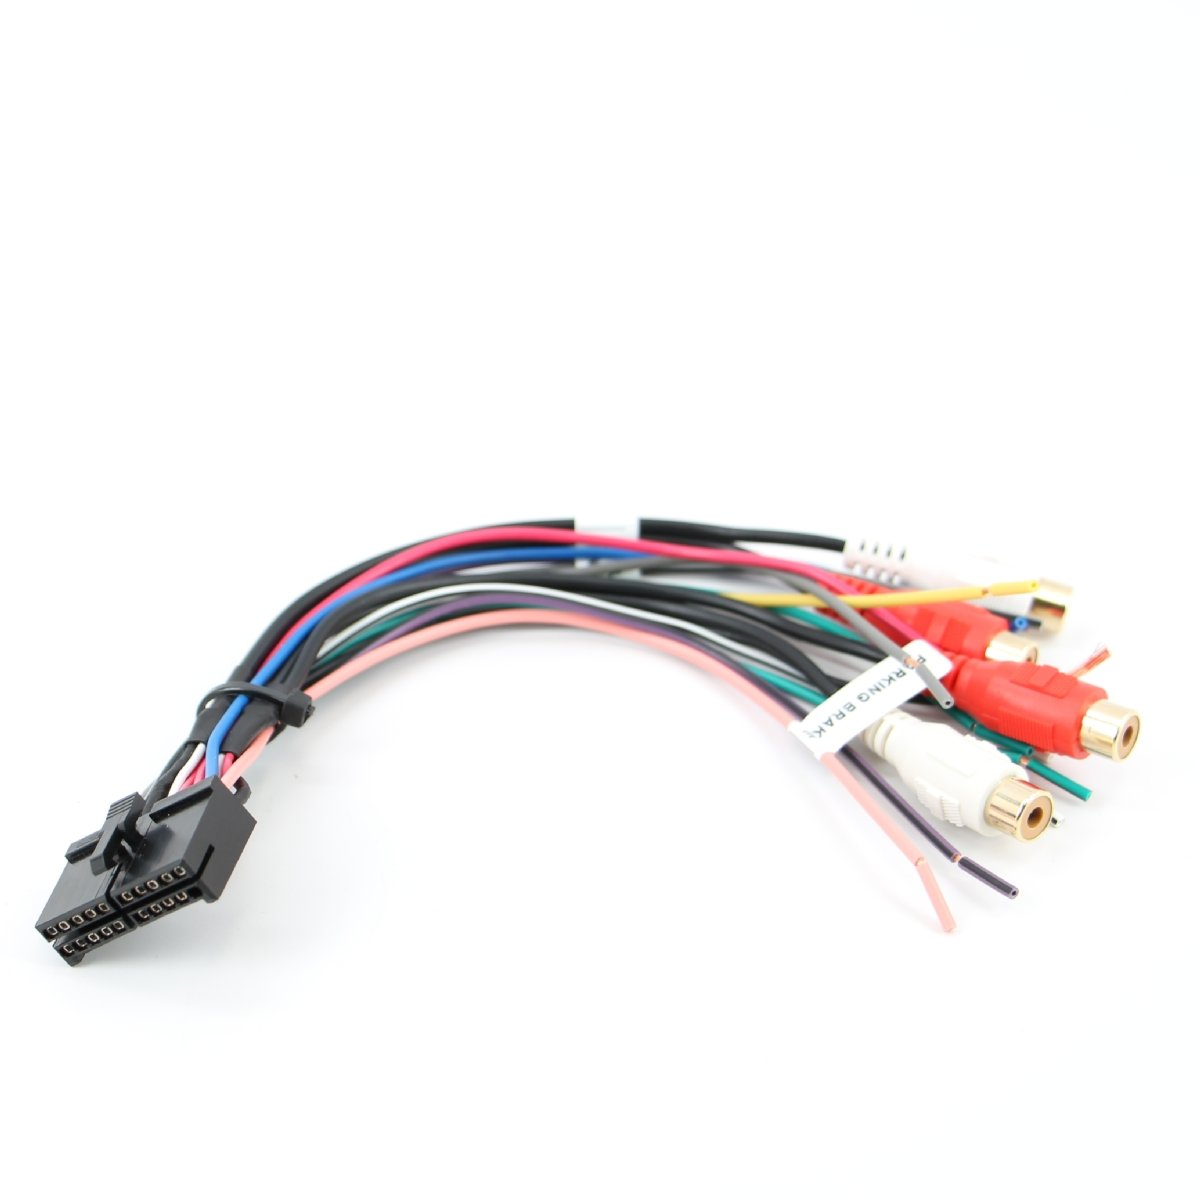 Amazon.com: Xtenzi Wire Harness Radio for Jensen 20Pin VM9510 VM8113 VM8013  MP5720 MP5620: Automotive